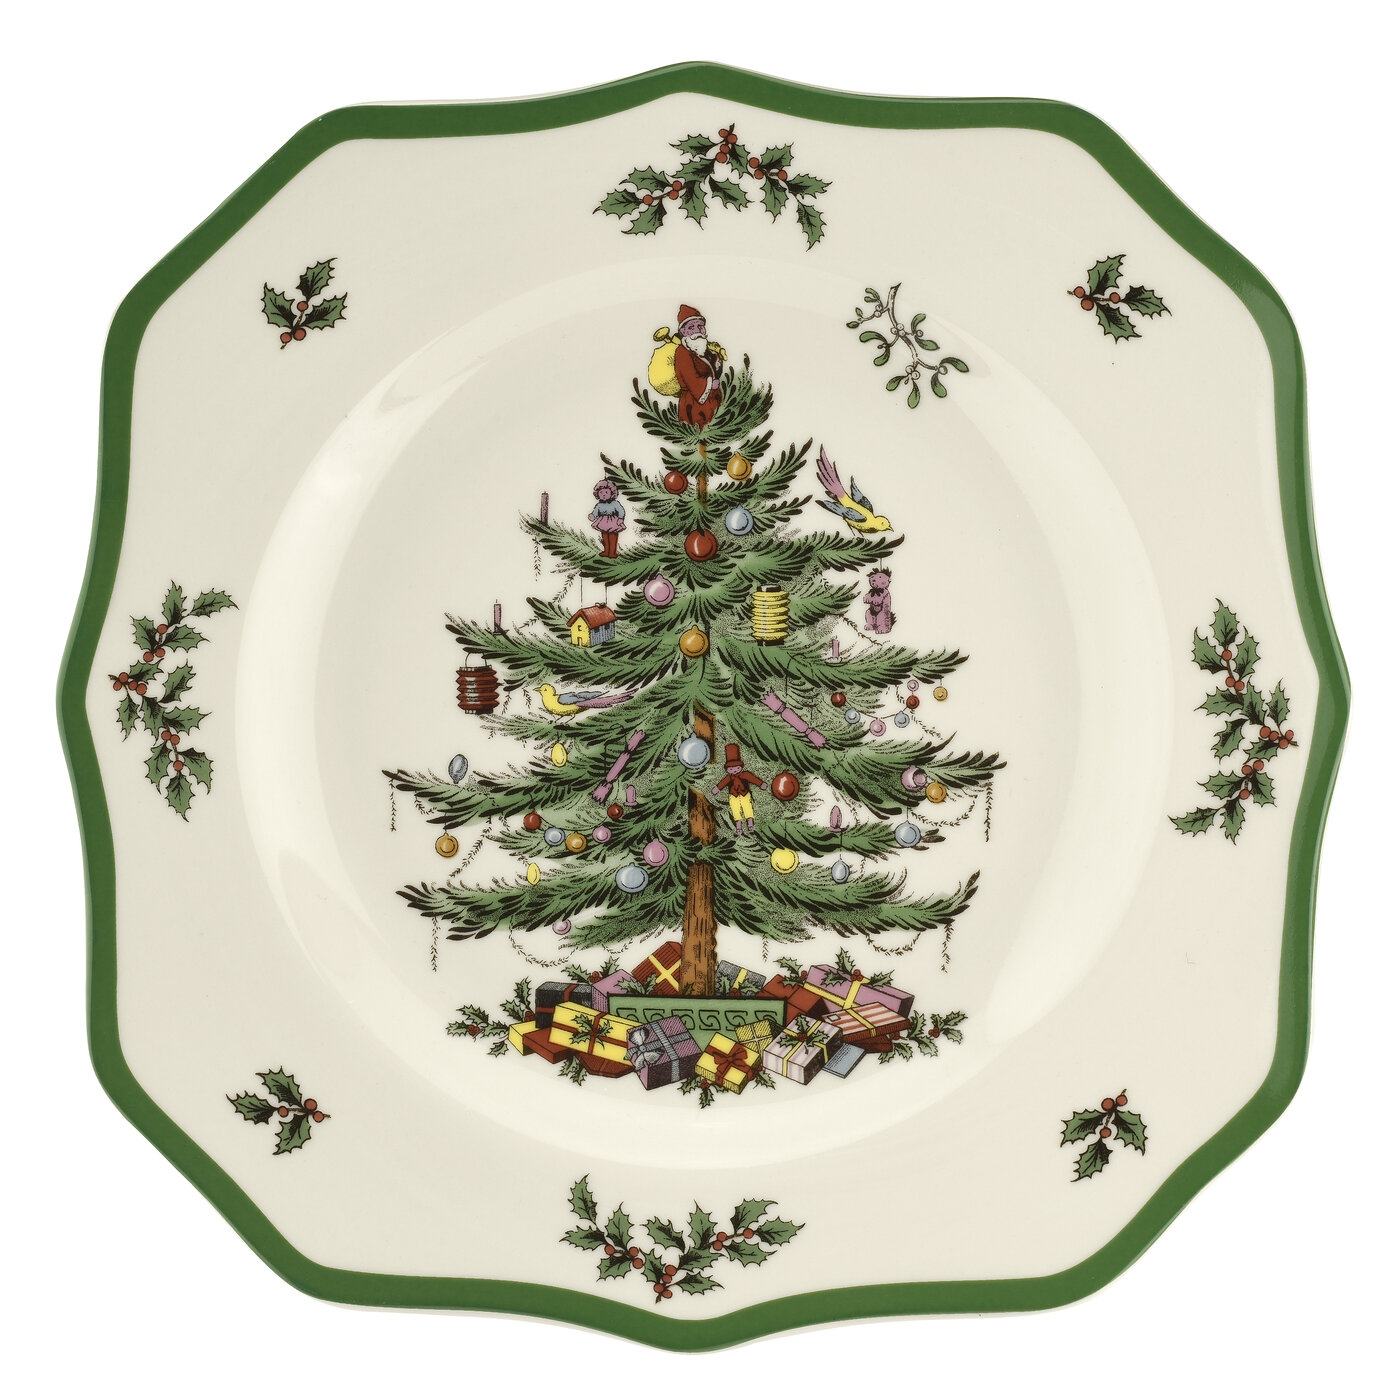 Spode Christmas Tree 10.5 Inch Scalloped Dinner Plate image number 0